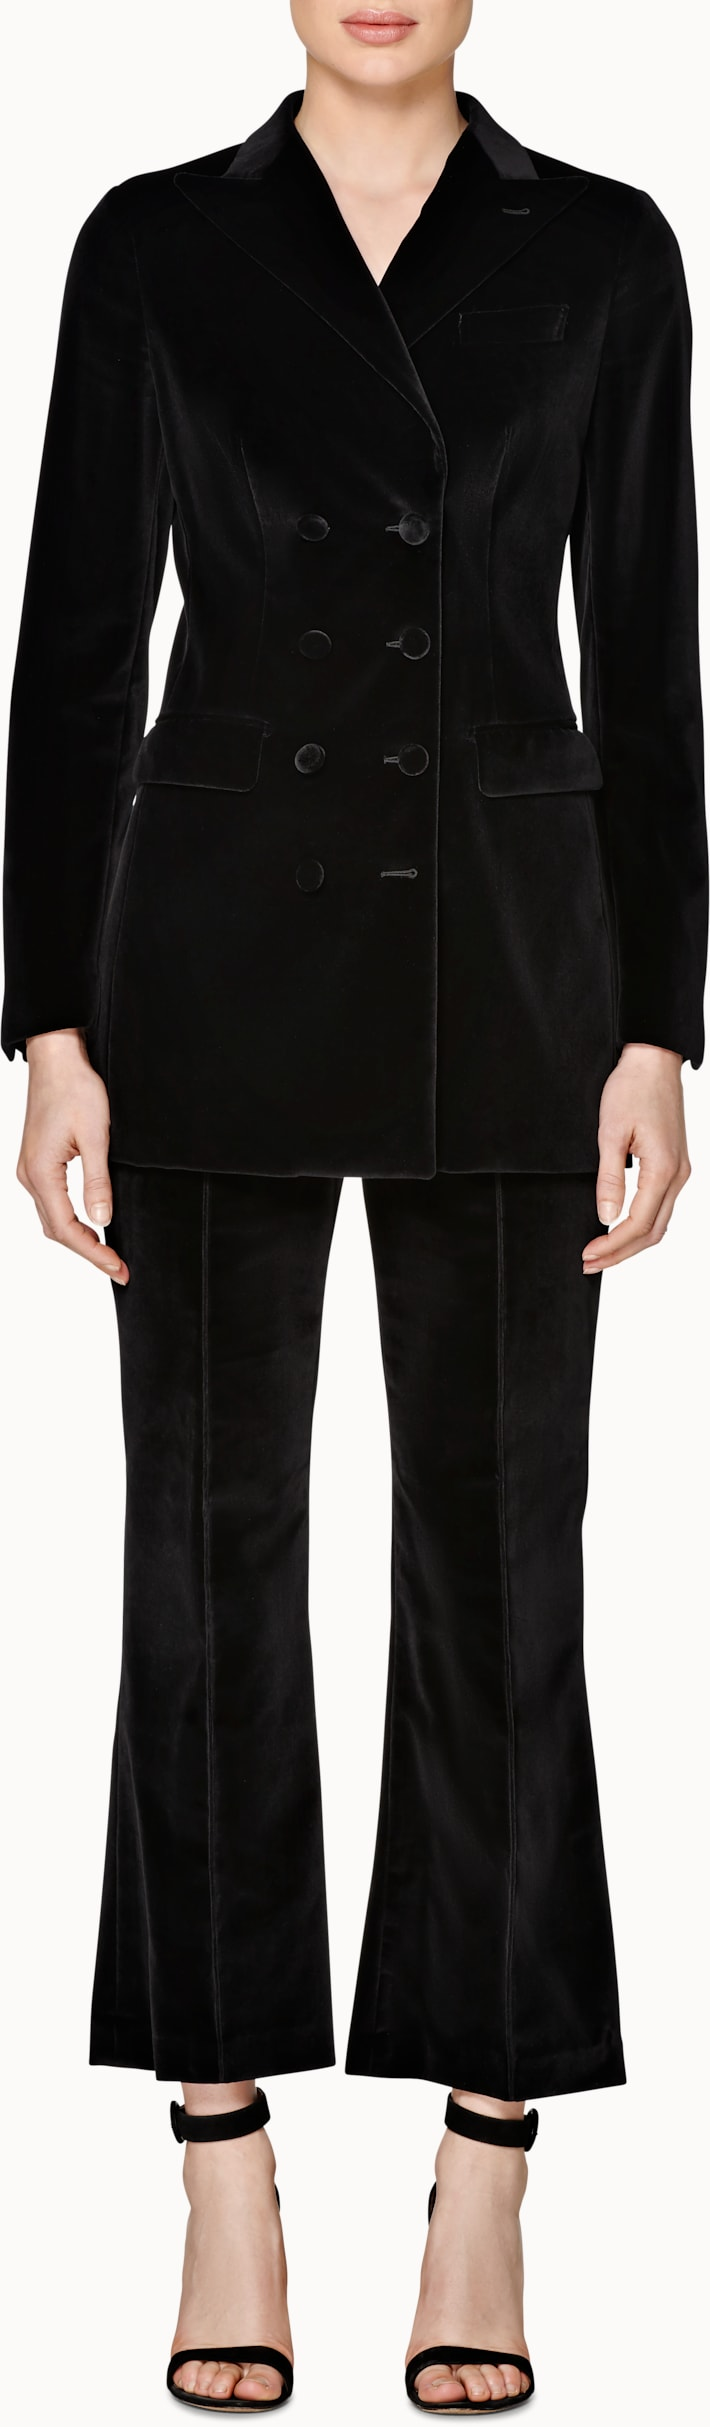 Cameron Black Velvet Suit